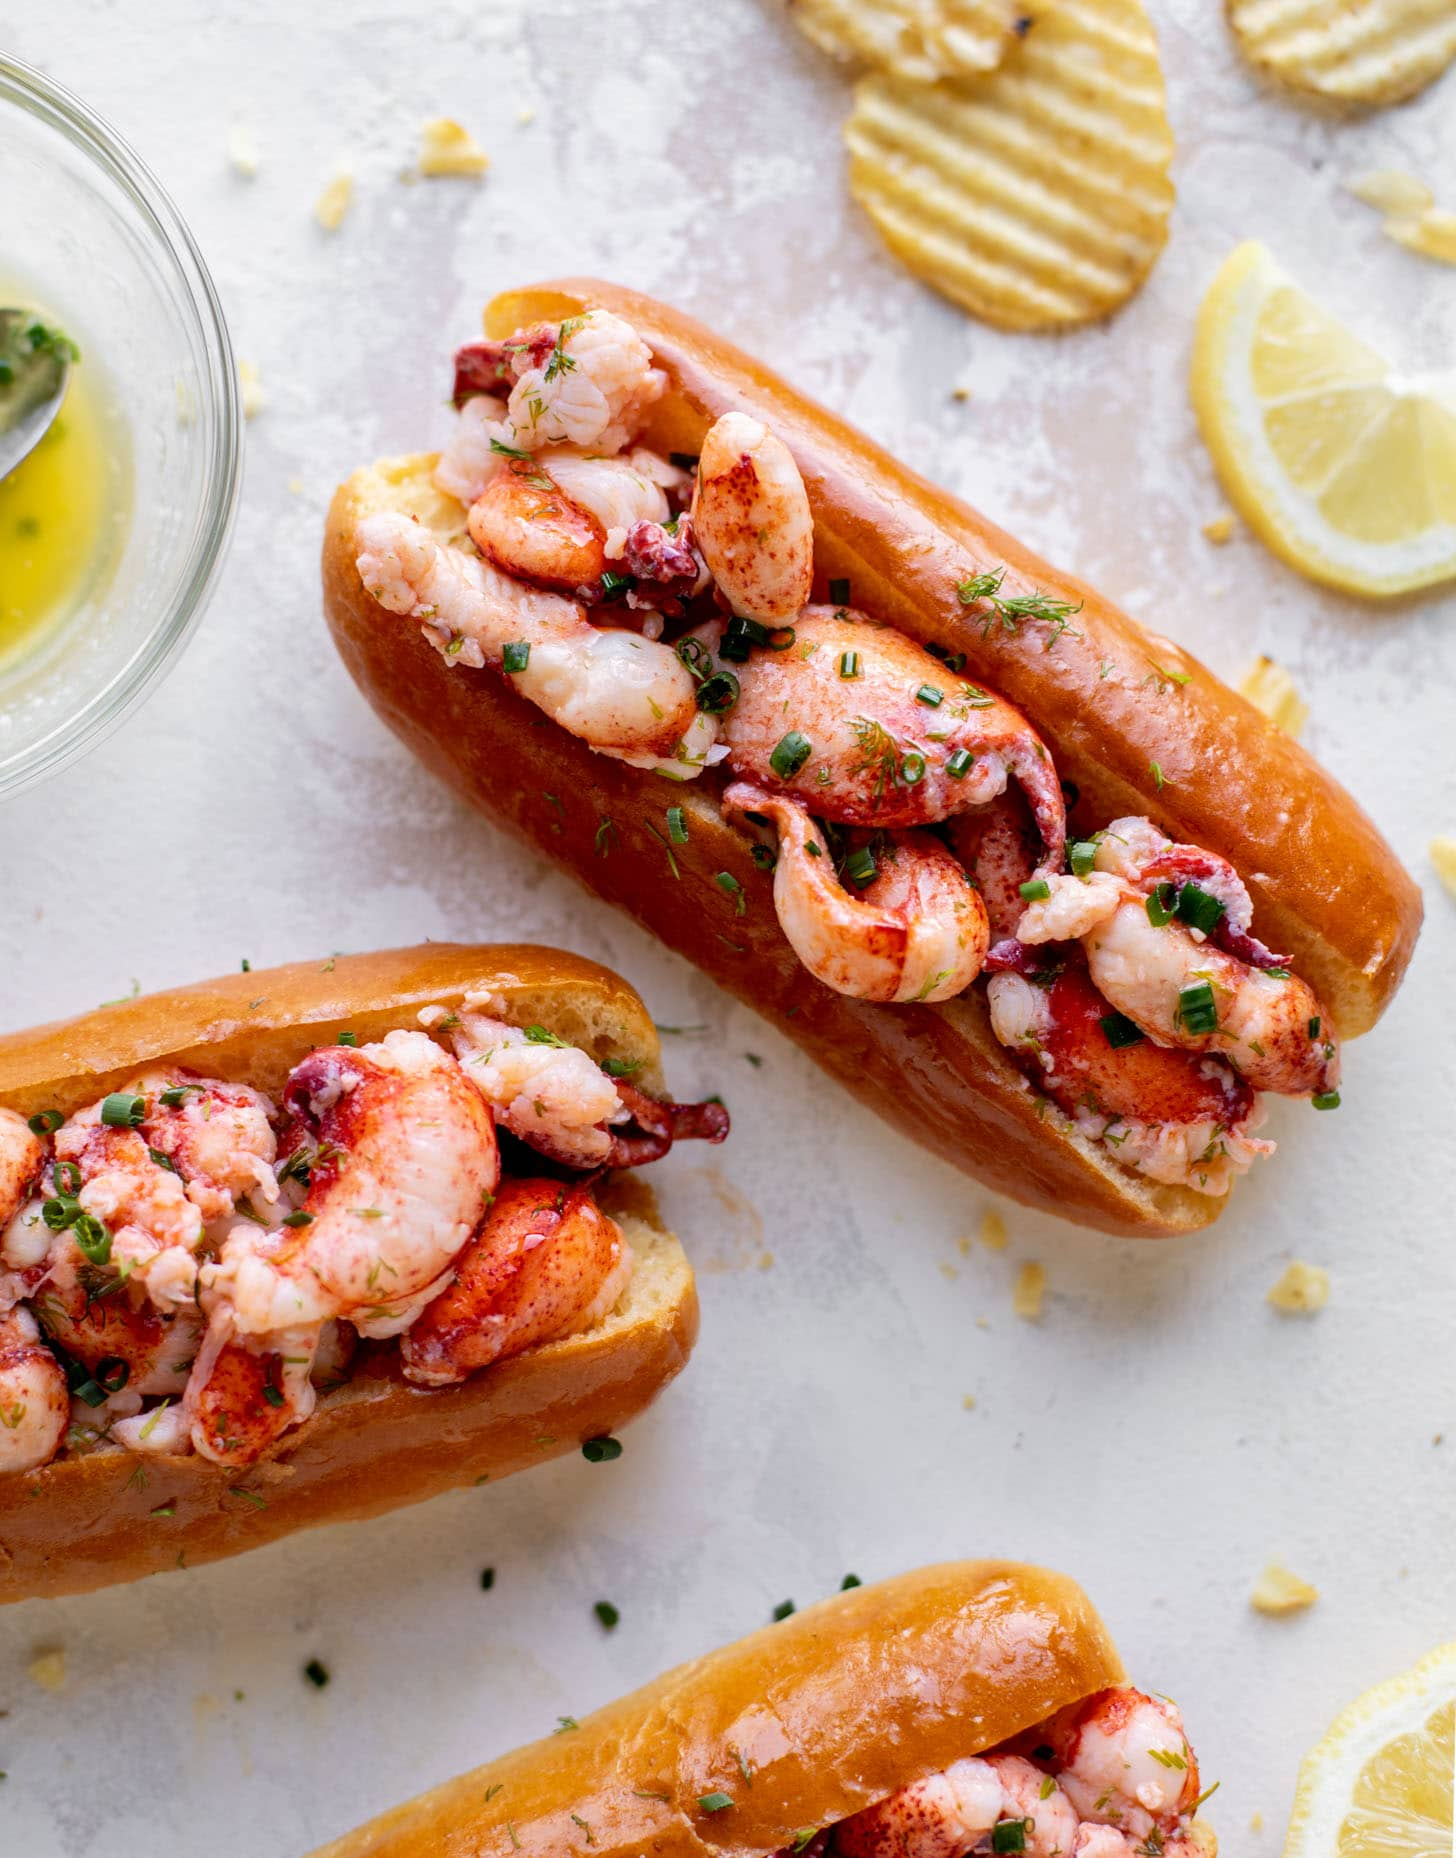 warm and buttery lobster rolls